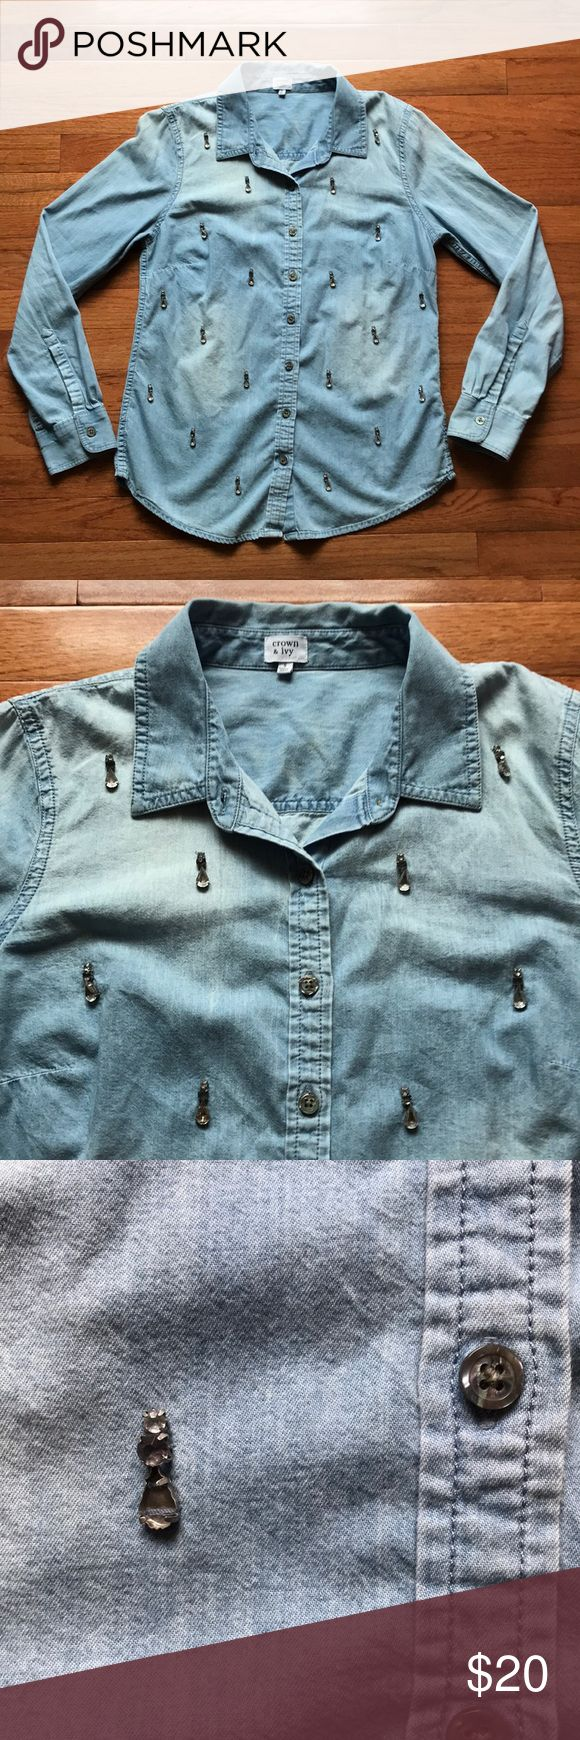 Crown & Ivy Denim Jeweled Beaded Shirt This is a soft denim long sleeve button up top from Crown and Ivy. Purchased at Belk. It features a three gem Beaded pattern throughout the front. Not missing any buttons. The gems are light gray, medium gray, and black. There are two gems missing, pictured above, they aren't noticeable when worn because they are so small and the thing that holds them is the same color. Great for all seasons! Check out other items to bundle with this! Always open to…